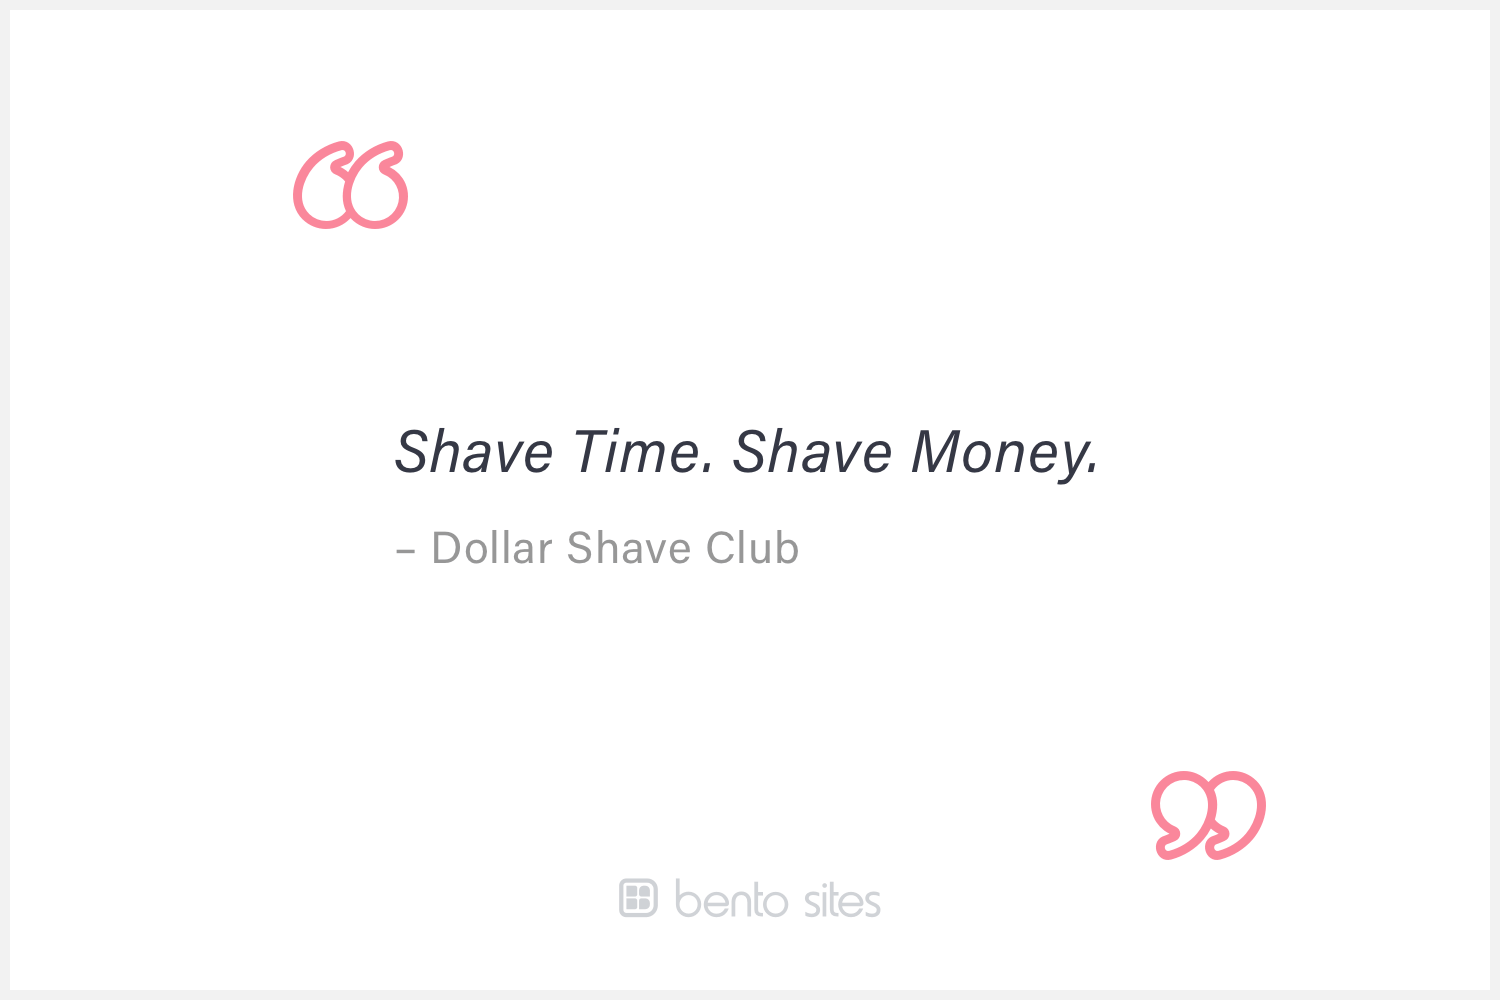 Quote: Shave time. Shave money.